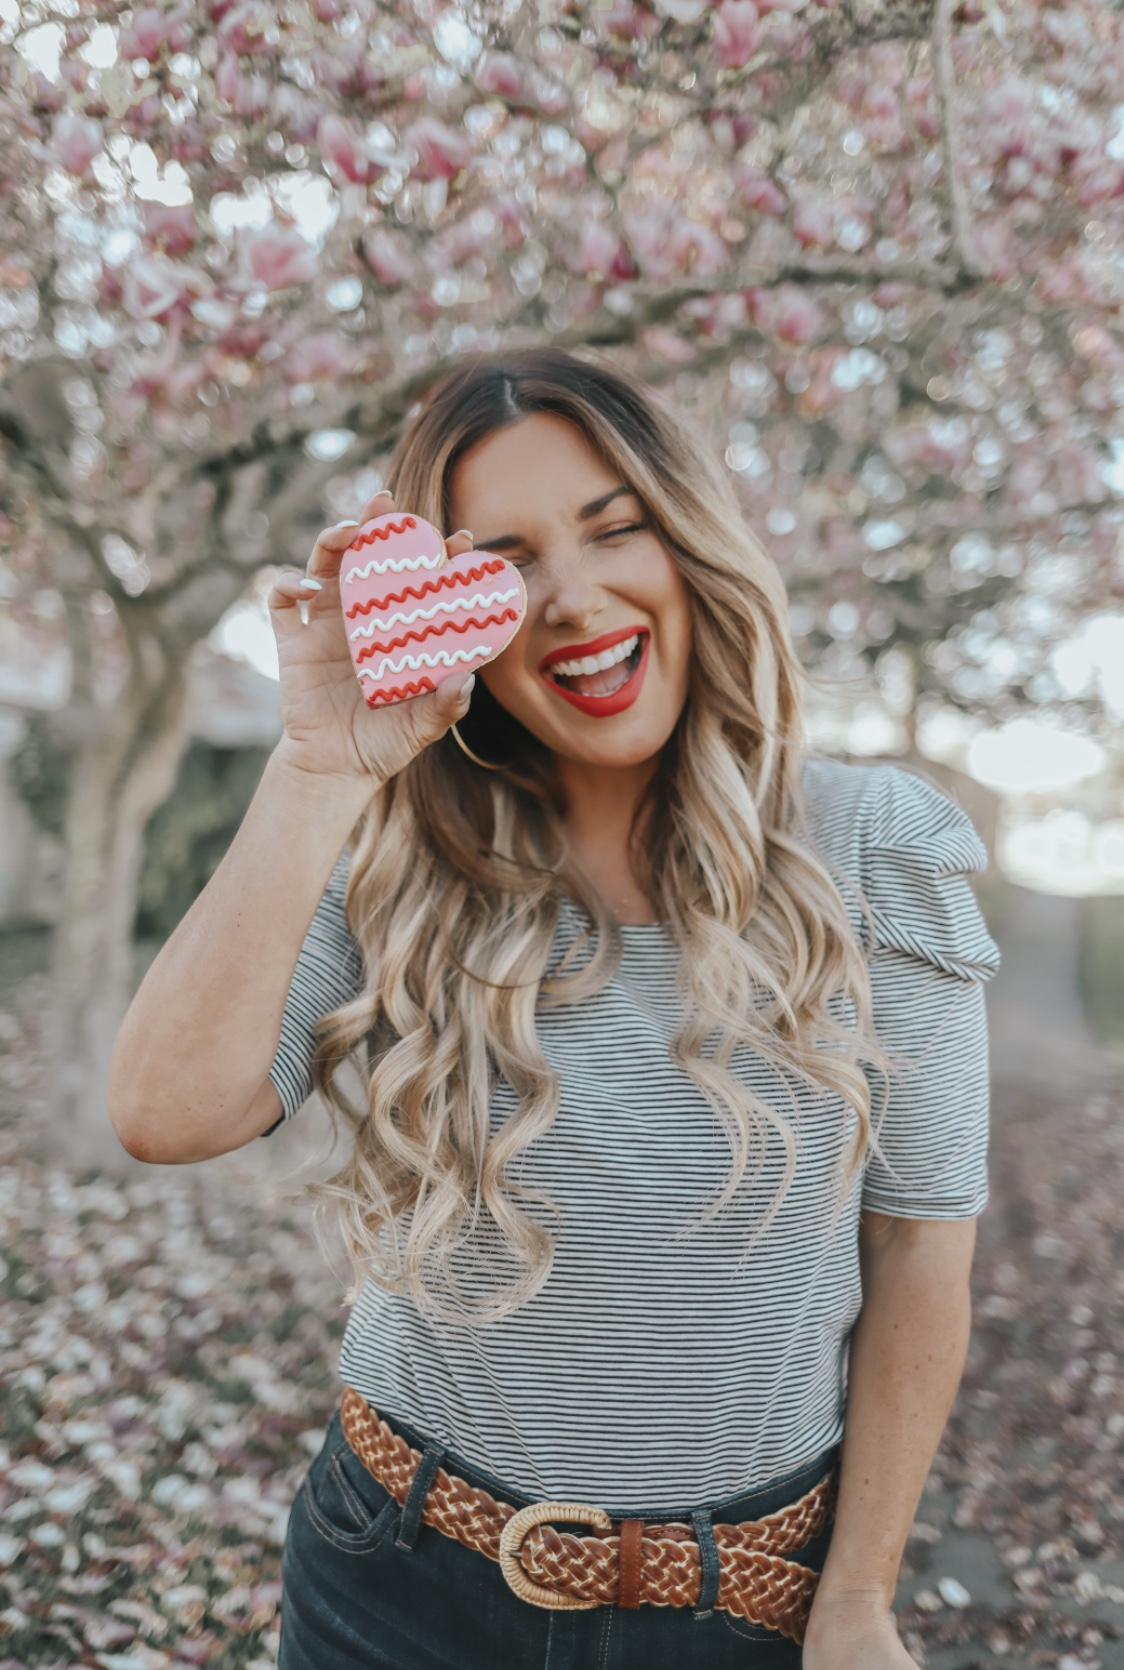 I'VE HAD TAPE-IN EXTENSIONS FOR A FEW YEARS AND UPGRADED TO THE HABIT HAND TIED EXTENSIONS. SHARING ALL OF THE DETAILS ON THE BLOG.